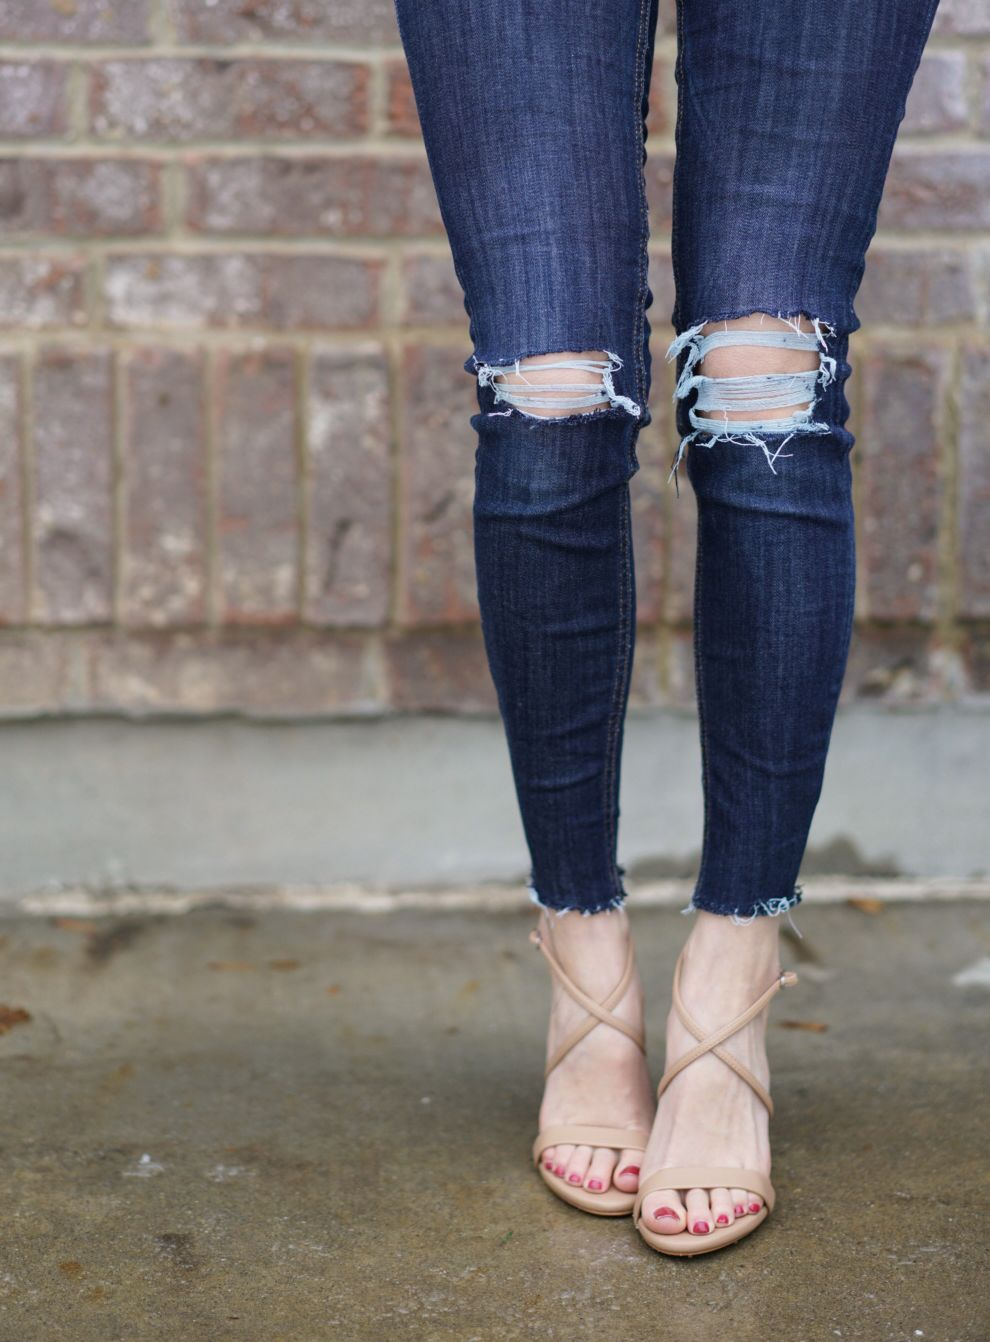 how to fray jeans with tweezers